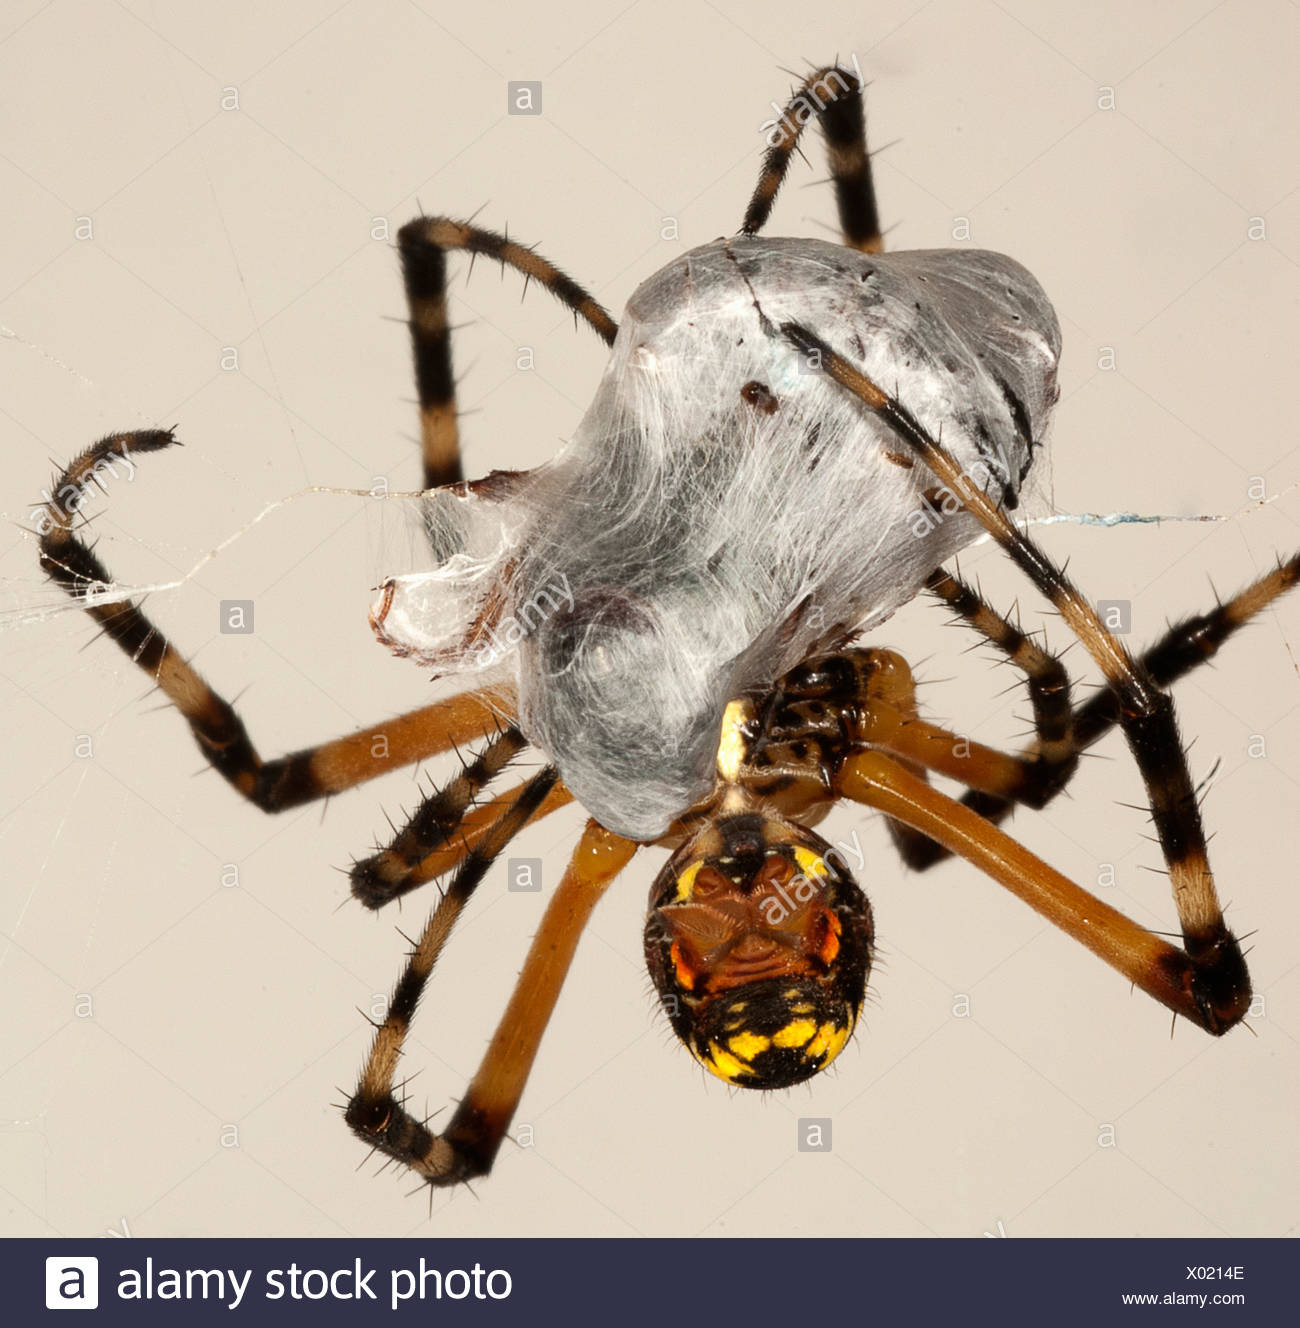 Spider wrapping its prey - Stock Image